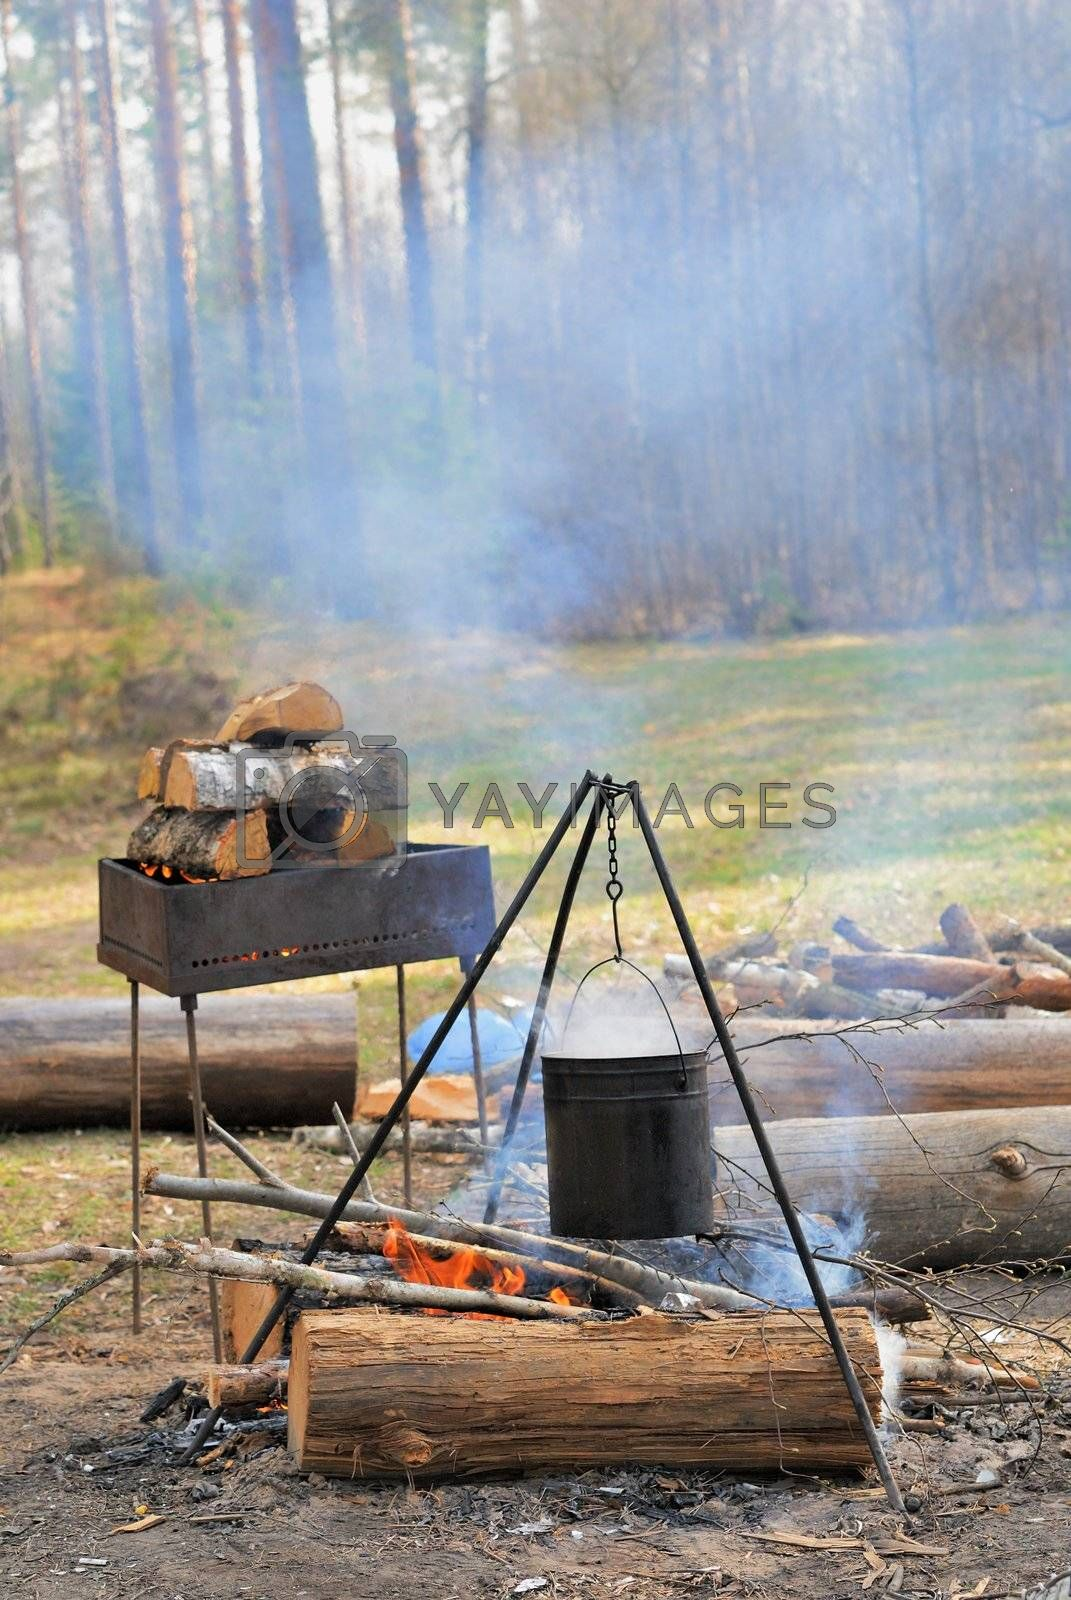 Royalty free image of Kettle over campfire by grauvision